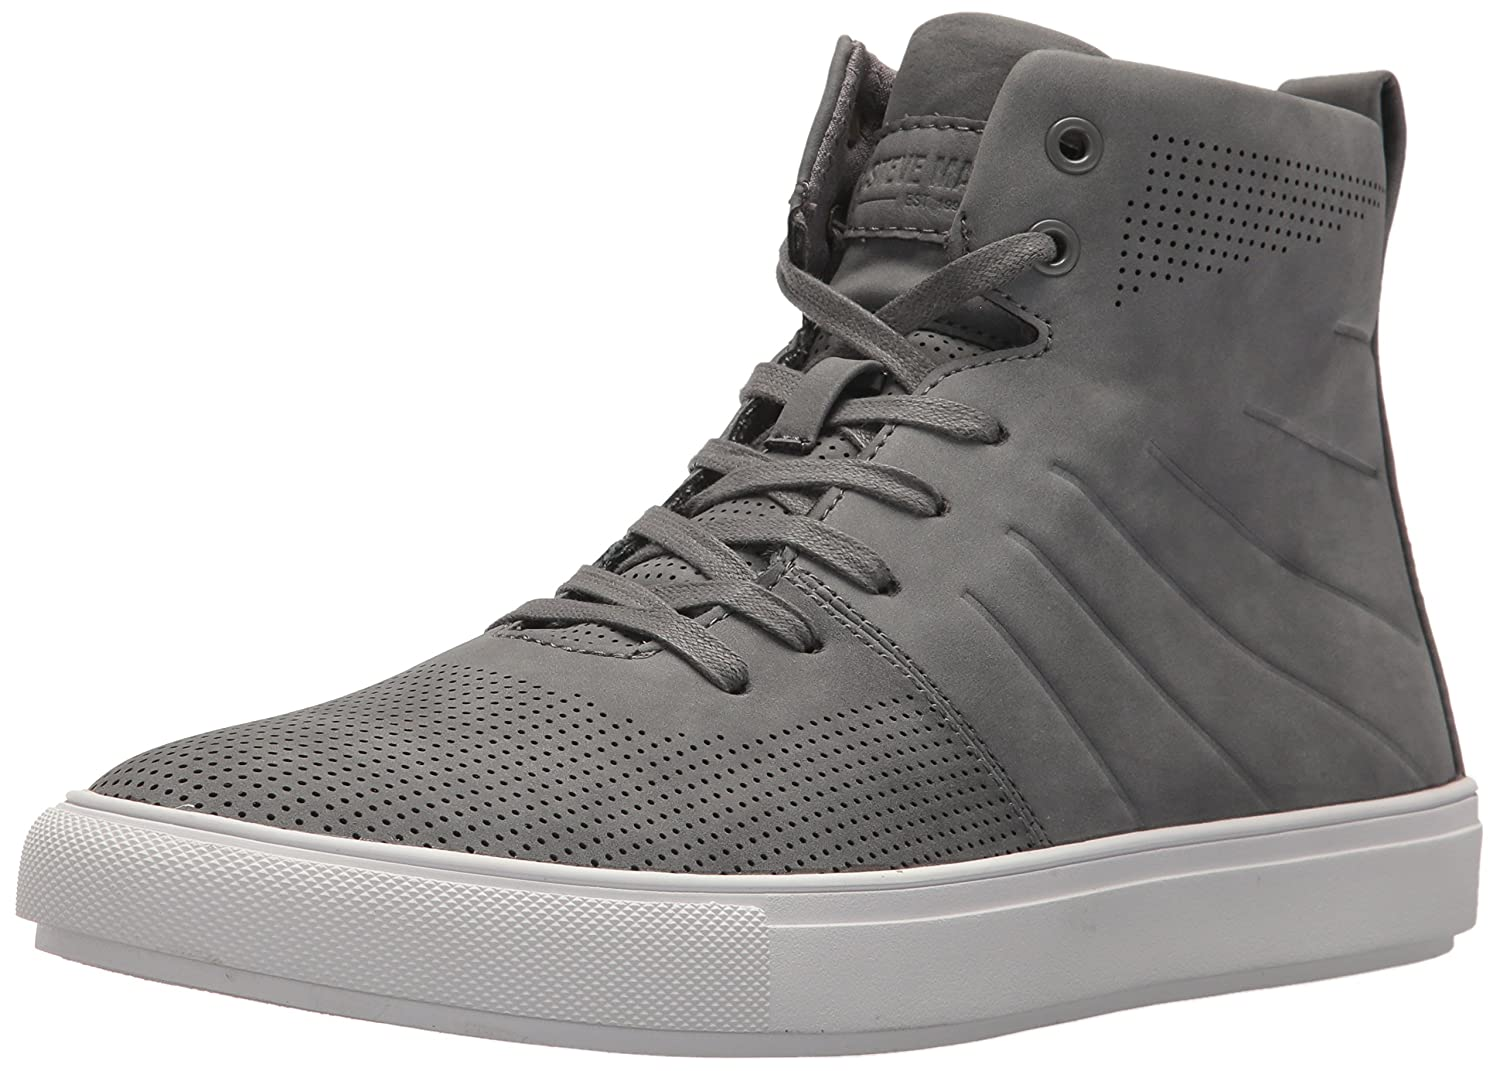 57f0a4e0335 Steve Madden Eskape Sneaker Black 7 D(M) US  Buy Online at Low Prices in  India - Amazon.in